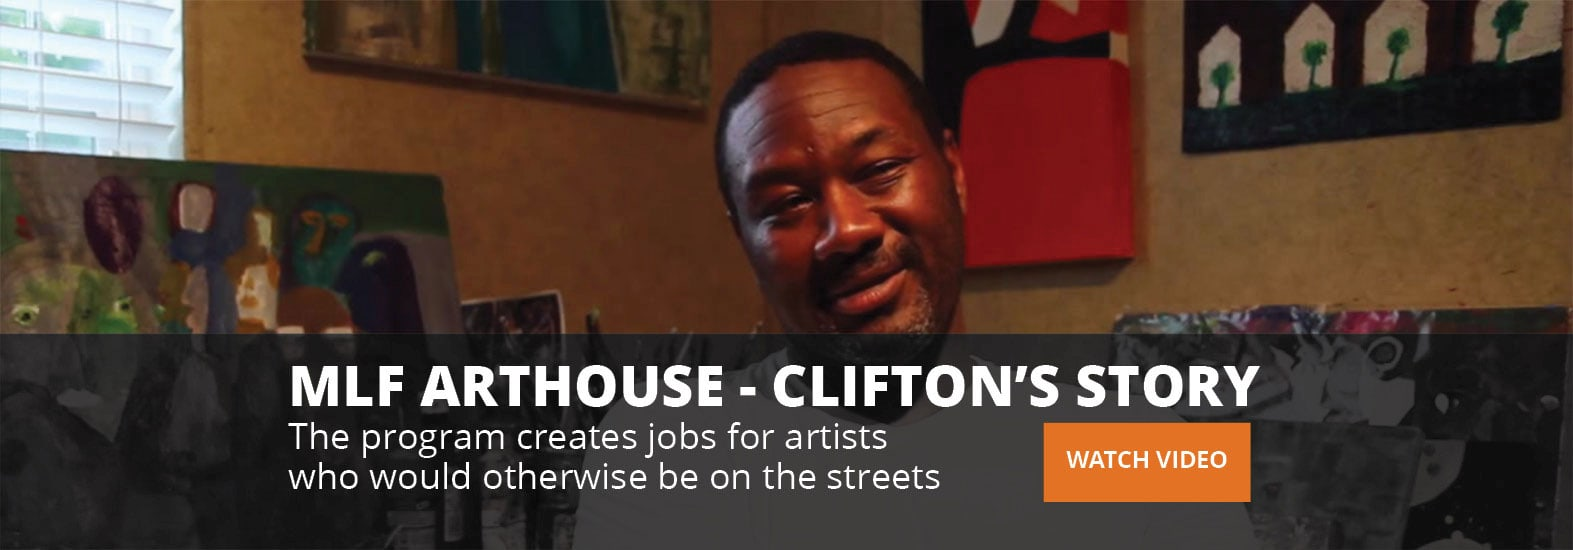 mlf-arthouse-clifton-story2